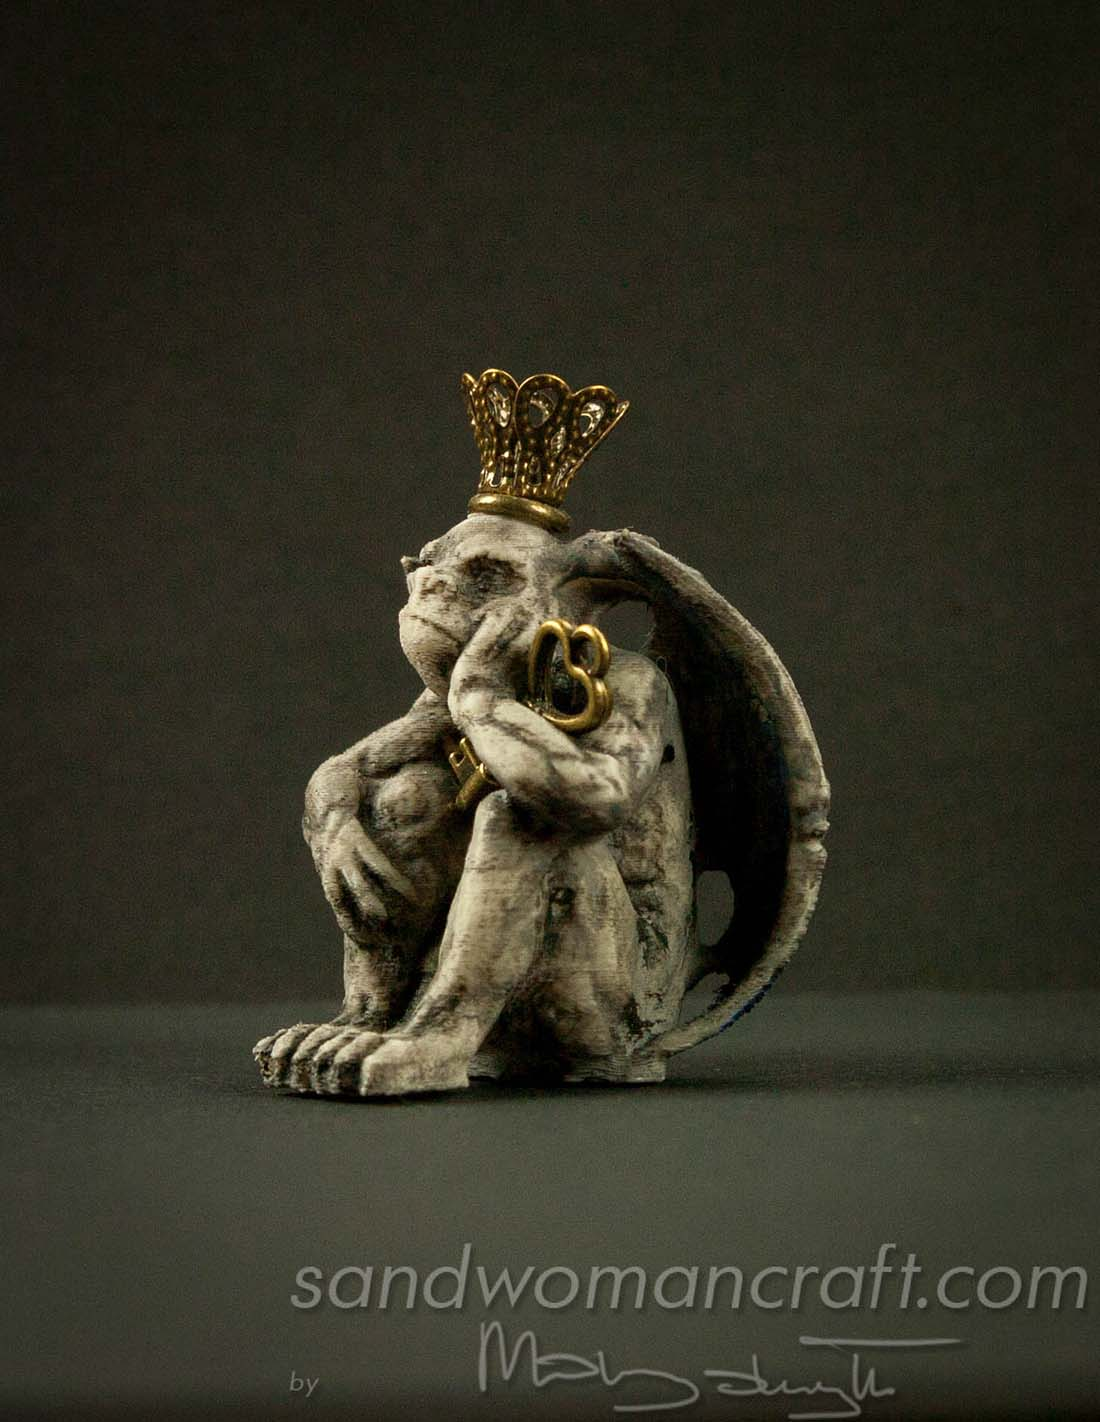 Miniature Gargoyle figurine with blue wings